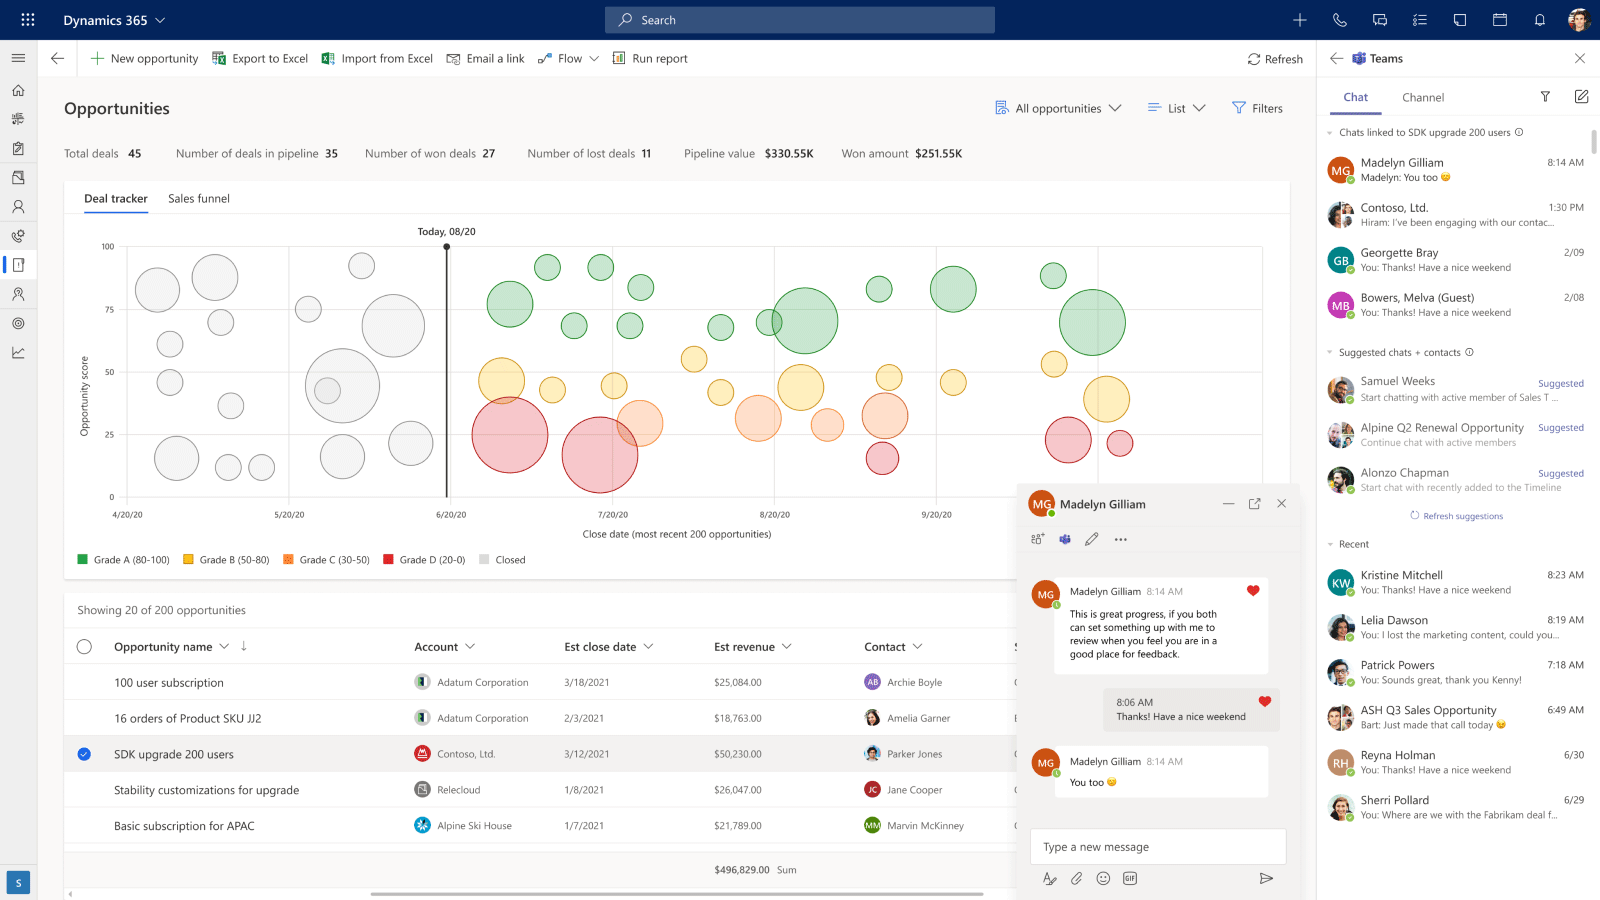 Manage the pipeline in a single workspace